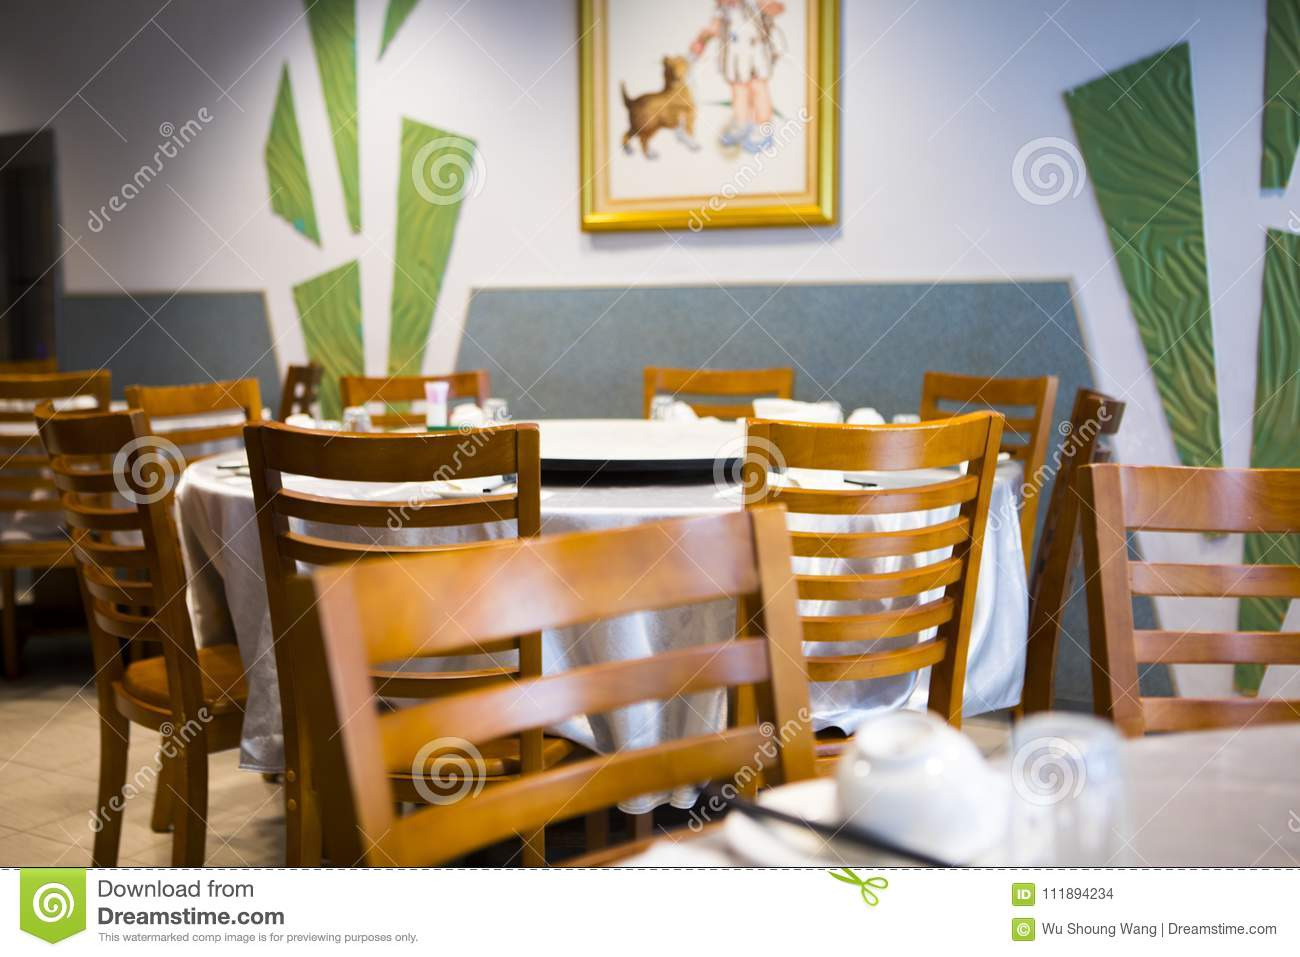 Taiwan Seafood Restaurant Restaurant Clean And Bright Huang Interior Chinese Restaurant Stock Photo Image Of Fresh Delicate 111894234